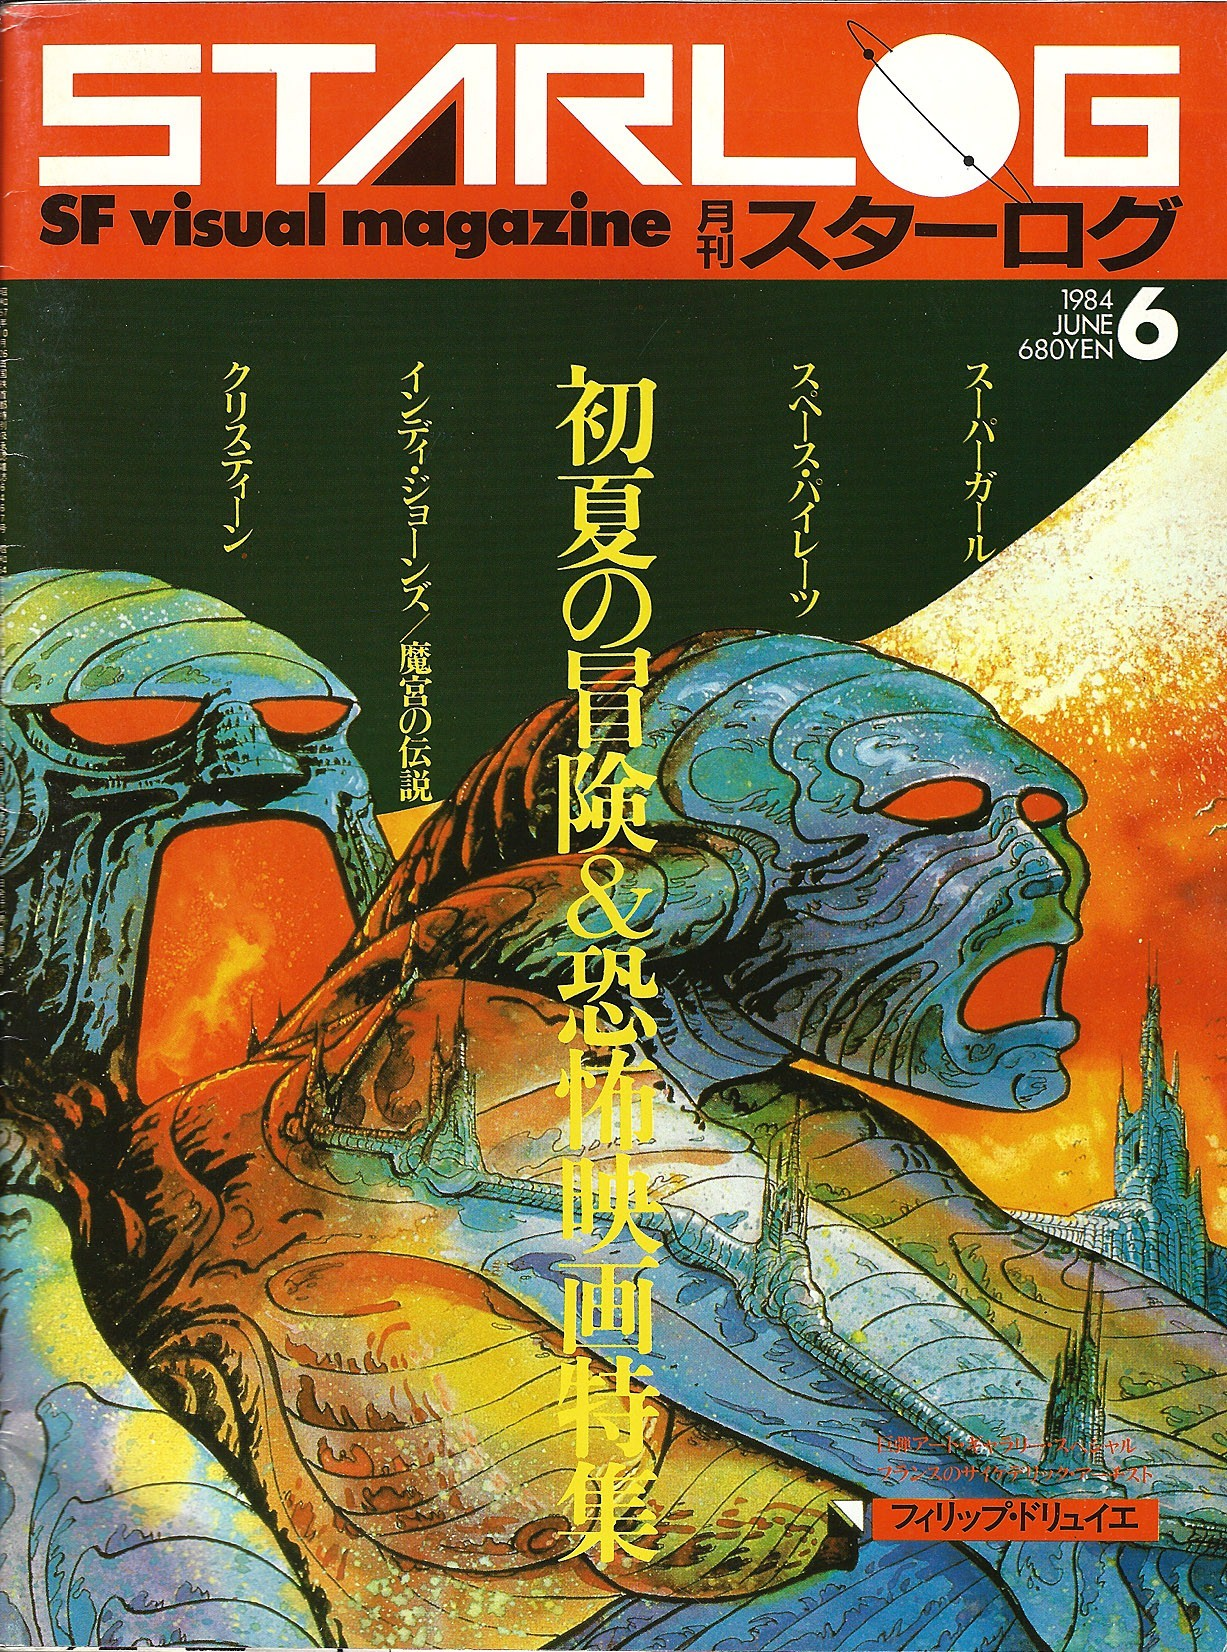 Starlog, Japanese edition, June, 1984. Cover by Philippe Druillet.